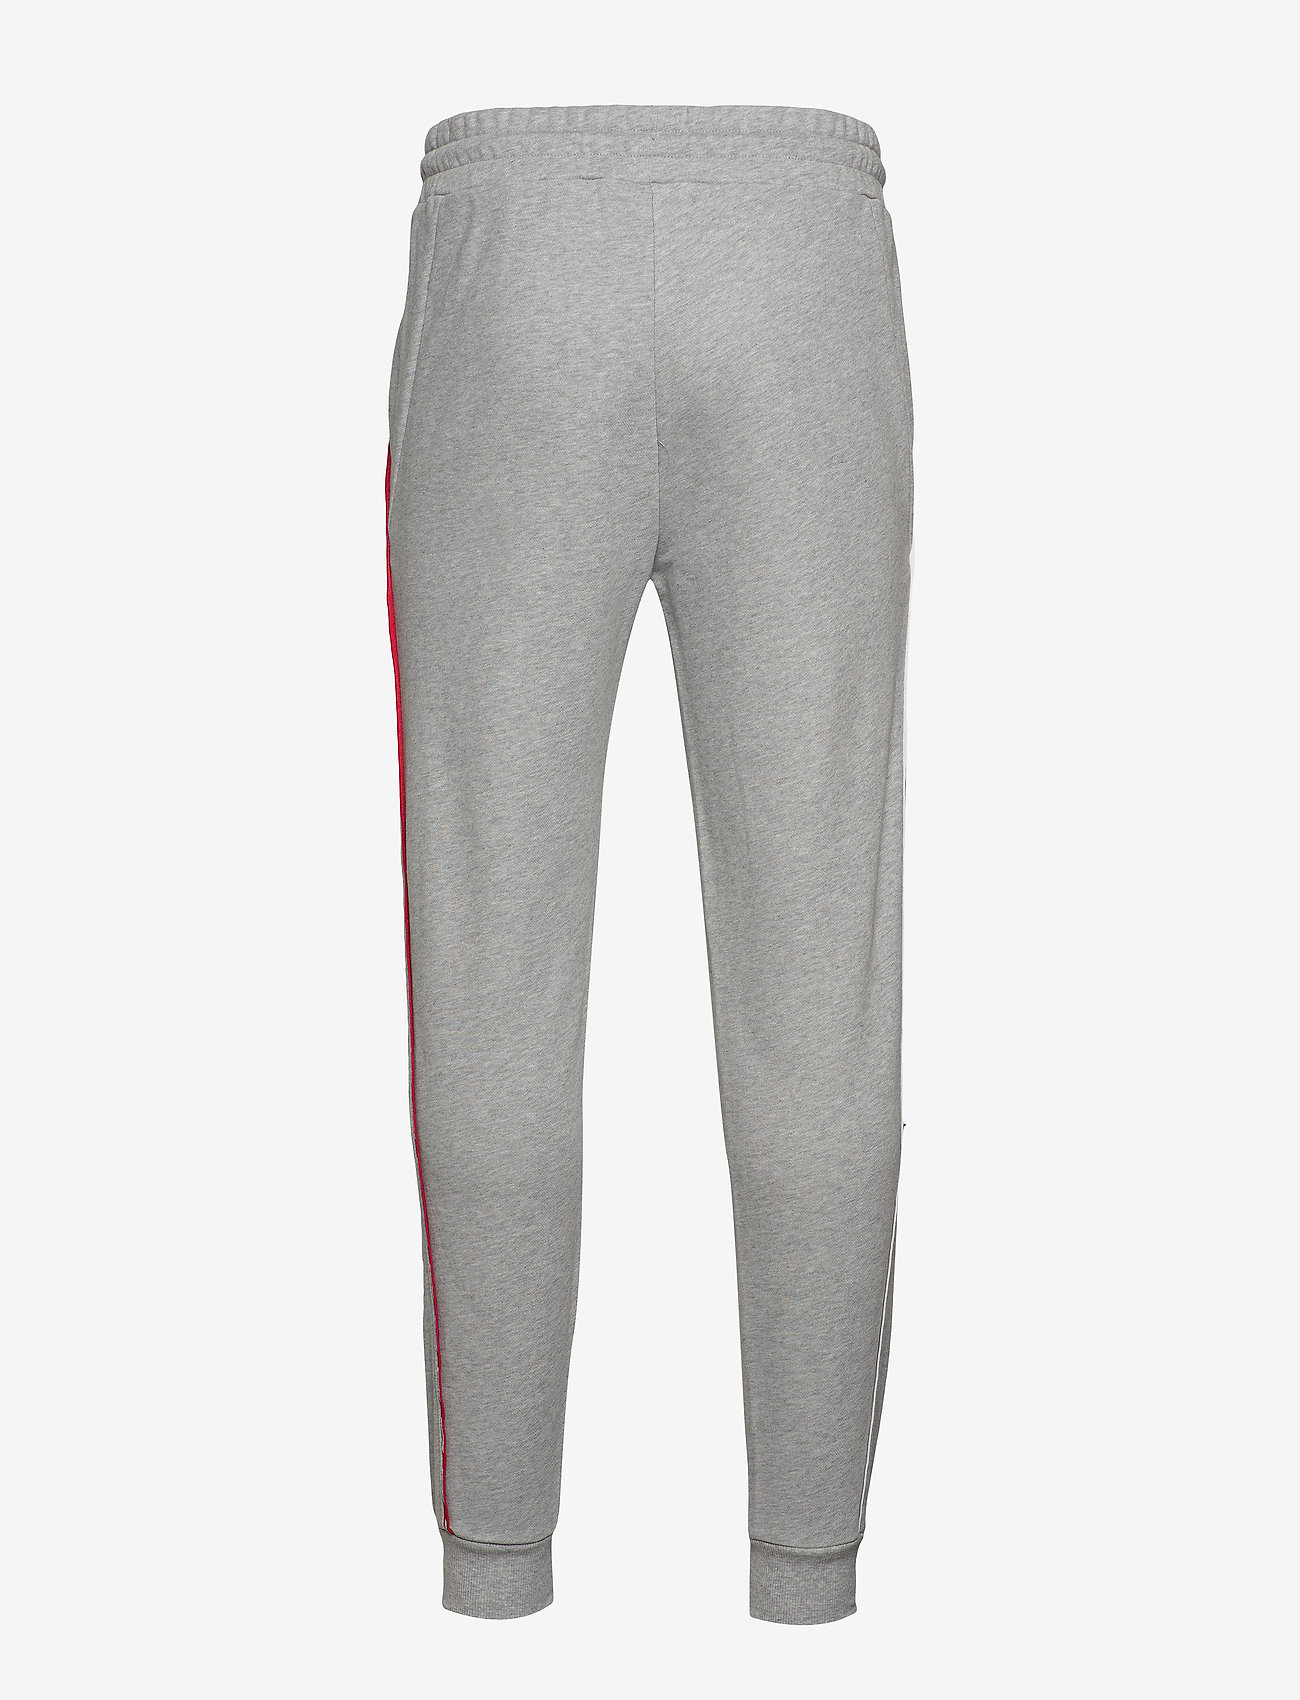 Tommy Sport - PIPING FLEECE CUFFED PANT - pants - grey heather - 1